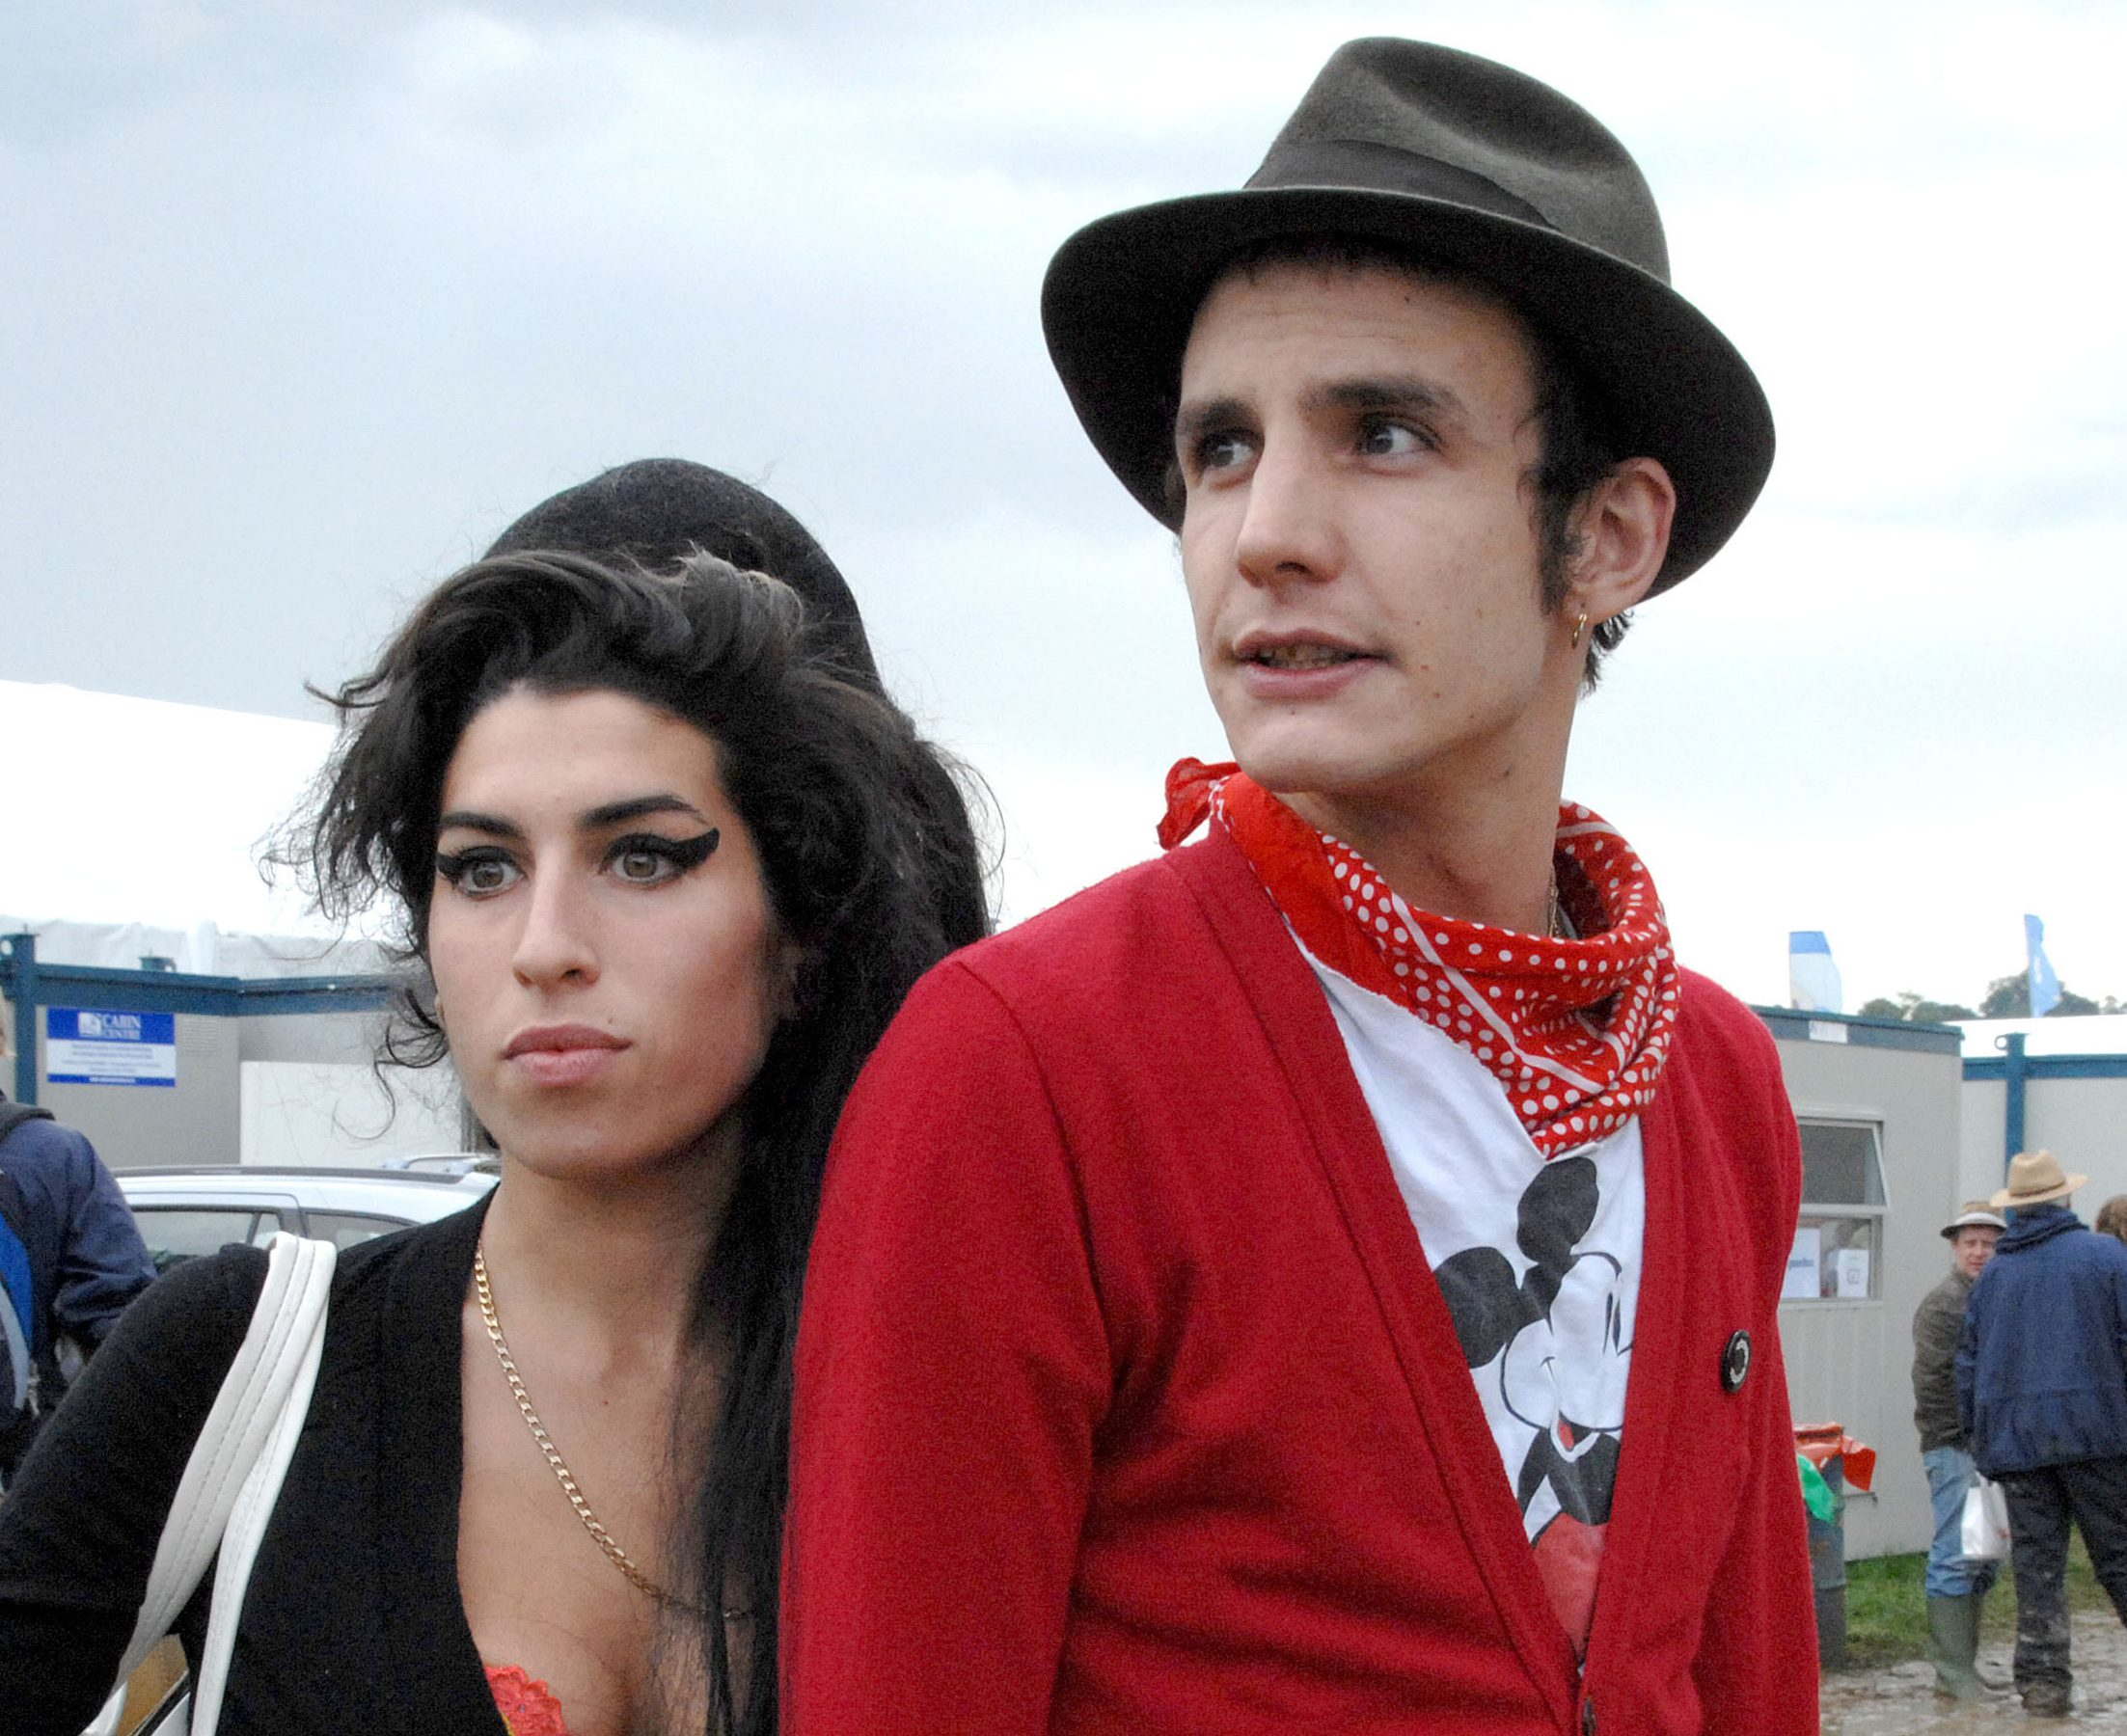 Blake Fielder-Civil claims Amy Winehouse tried to kill herself eight weeks before her death